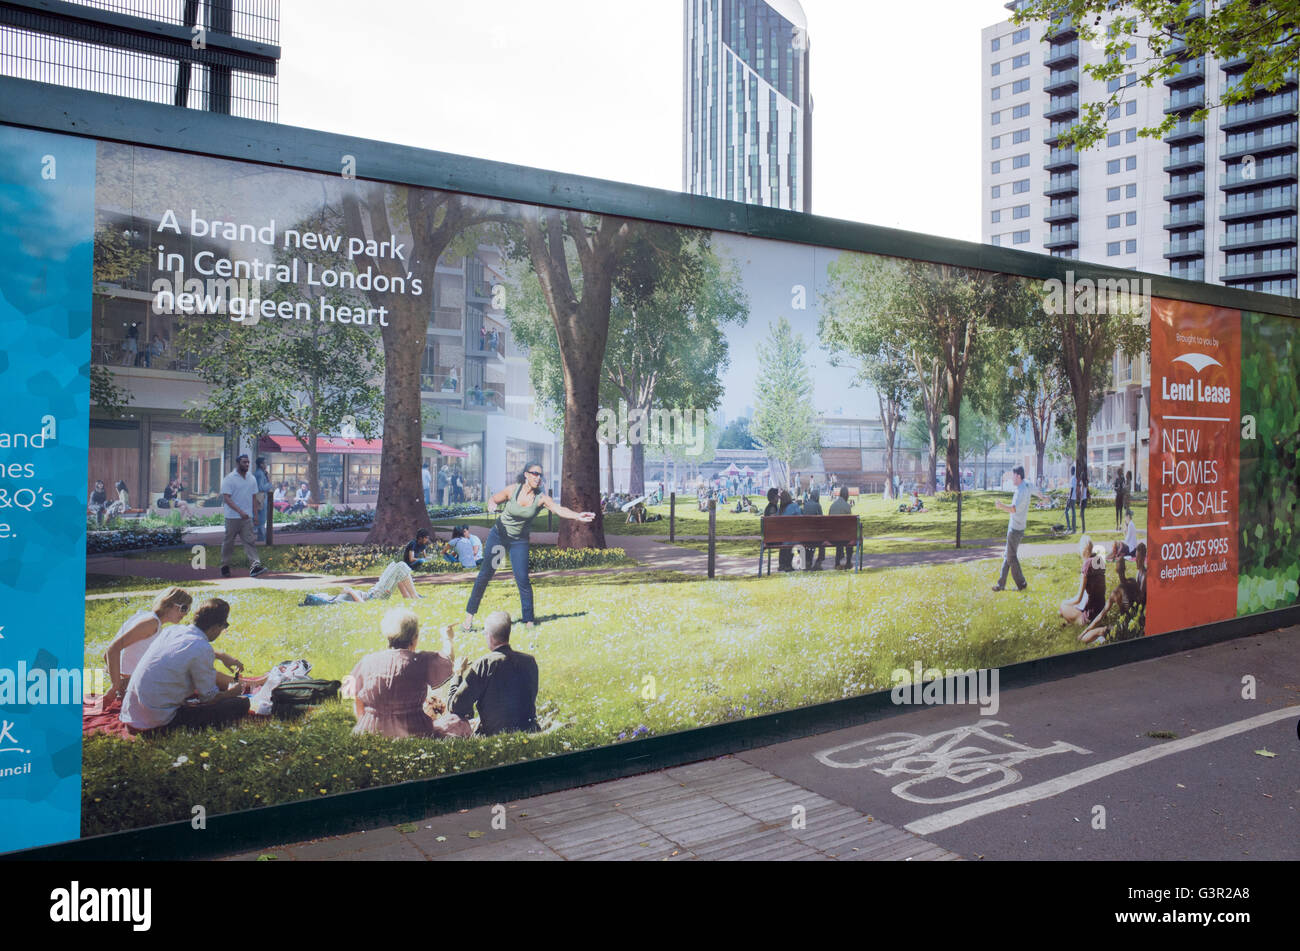 CGI of a new housing development on panel boards surrounding construction site at Elephant and Castle, London, UK - Stock Image